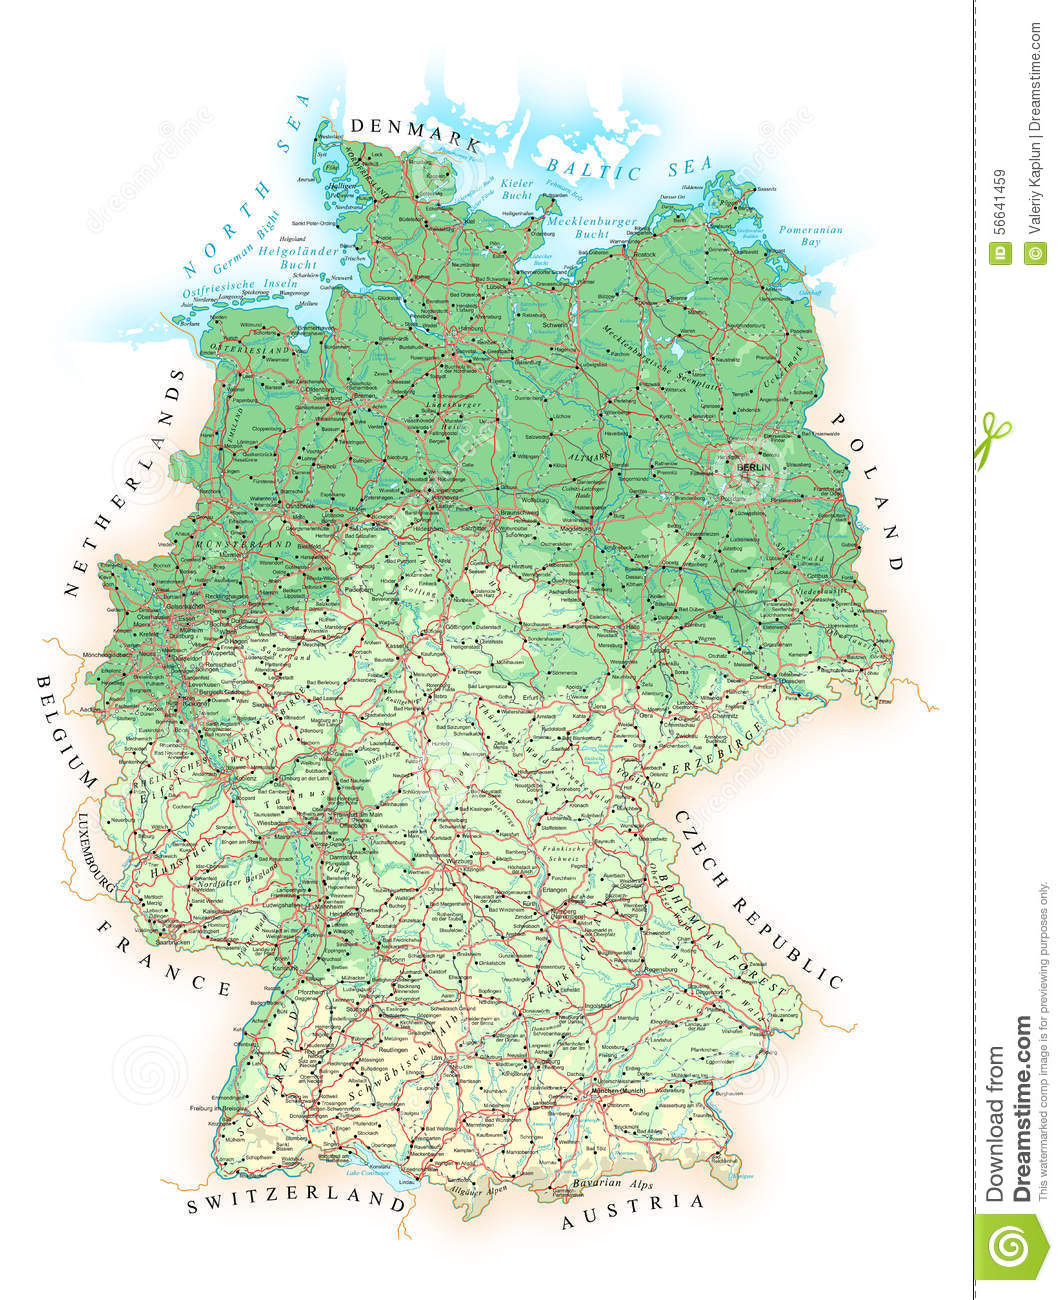 Germany Detailed Topographic Map Illustration Stock Vector